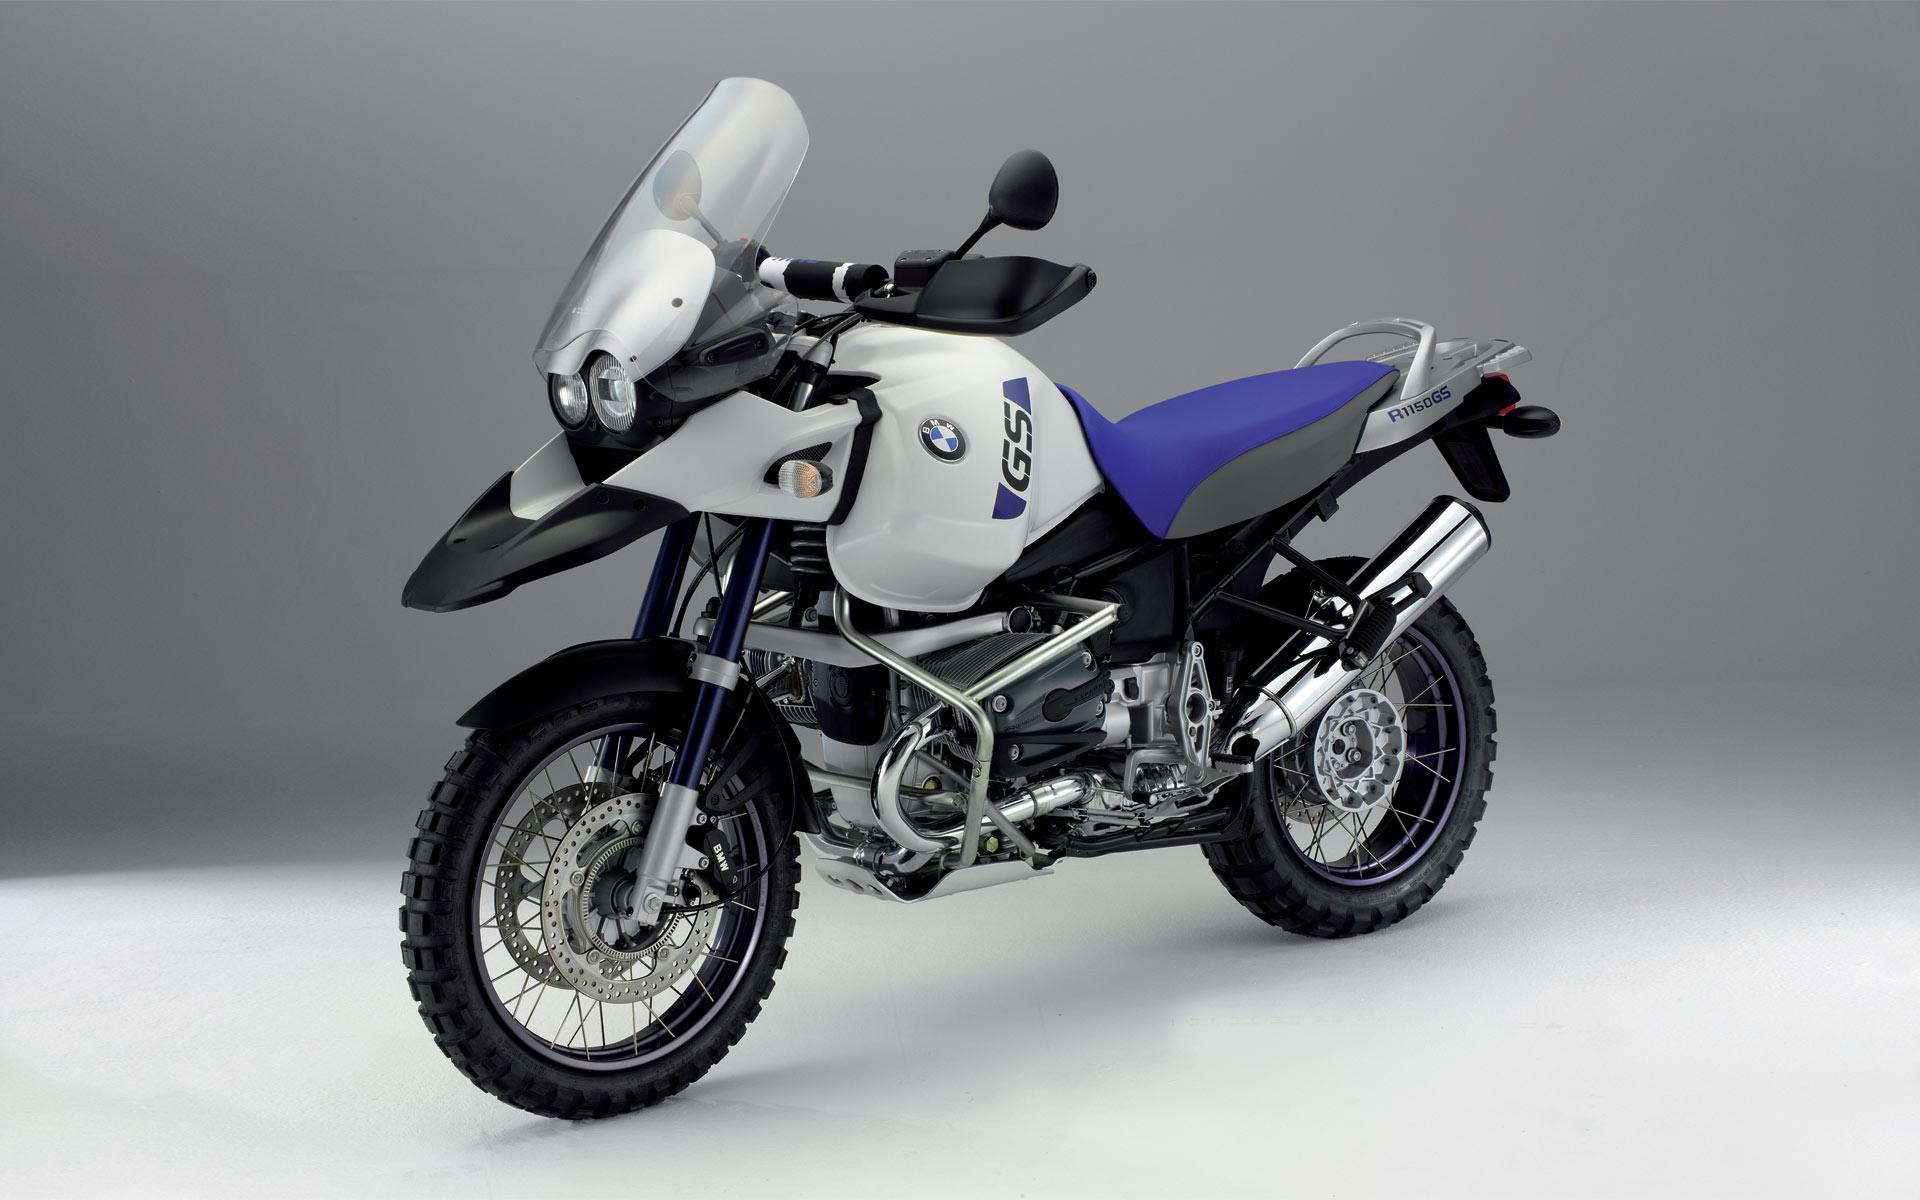 bmw r 1150 gs adventure 1920 1200 free download hd wallpapers free desktop backgrounds. Black Bedroom Furniture Sets. Home Design Ideas